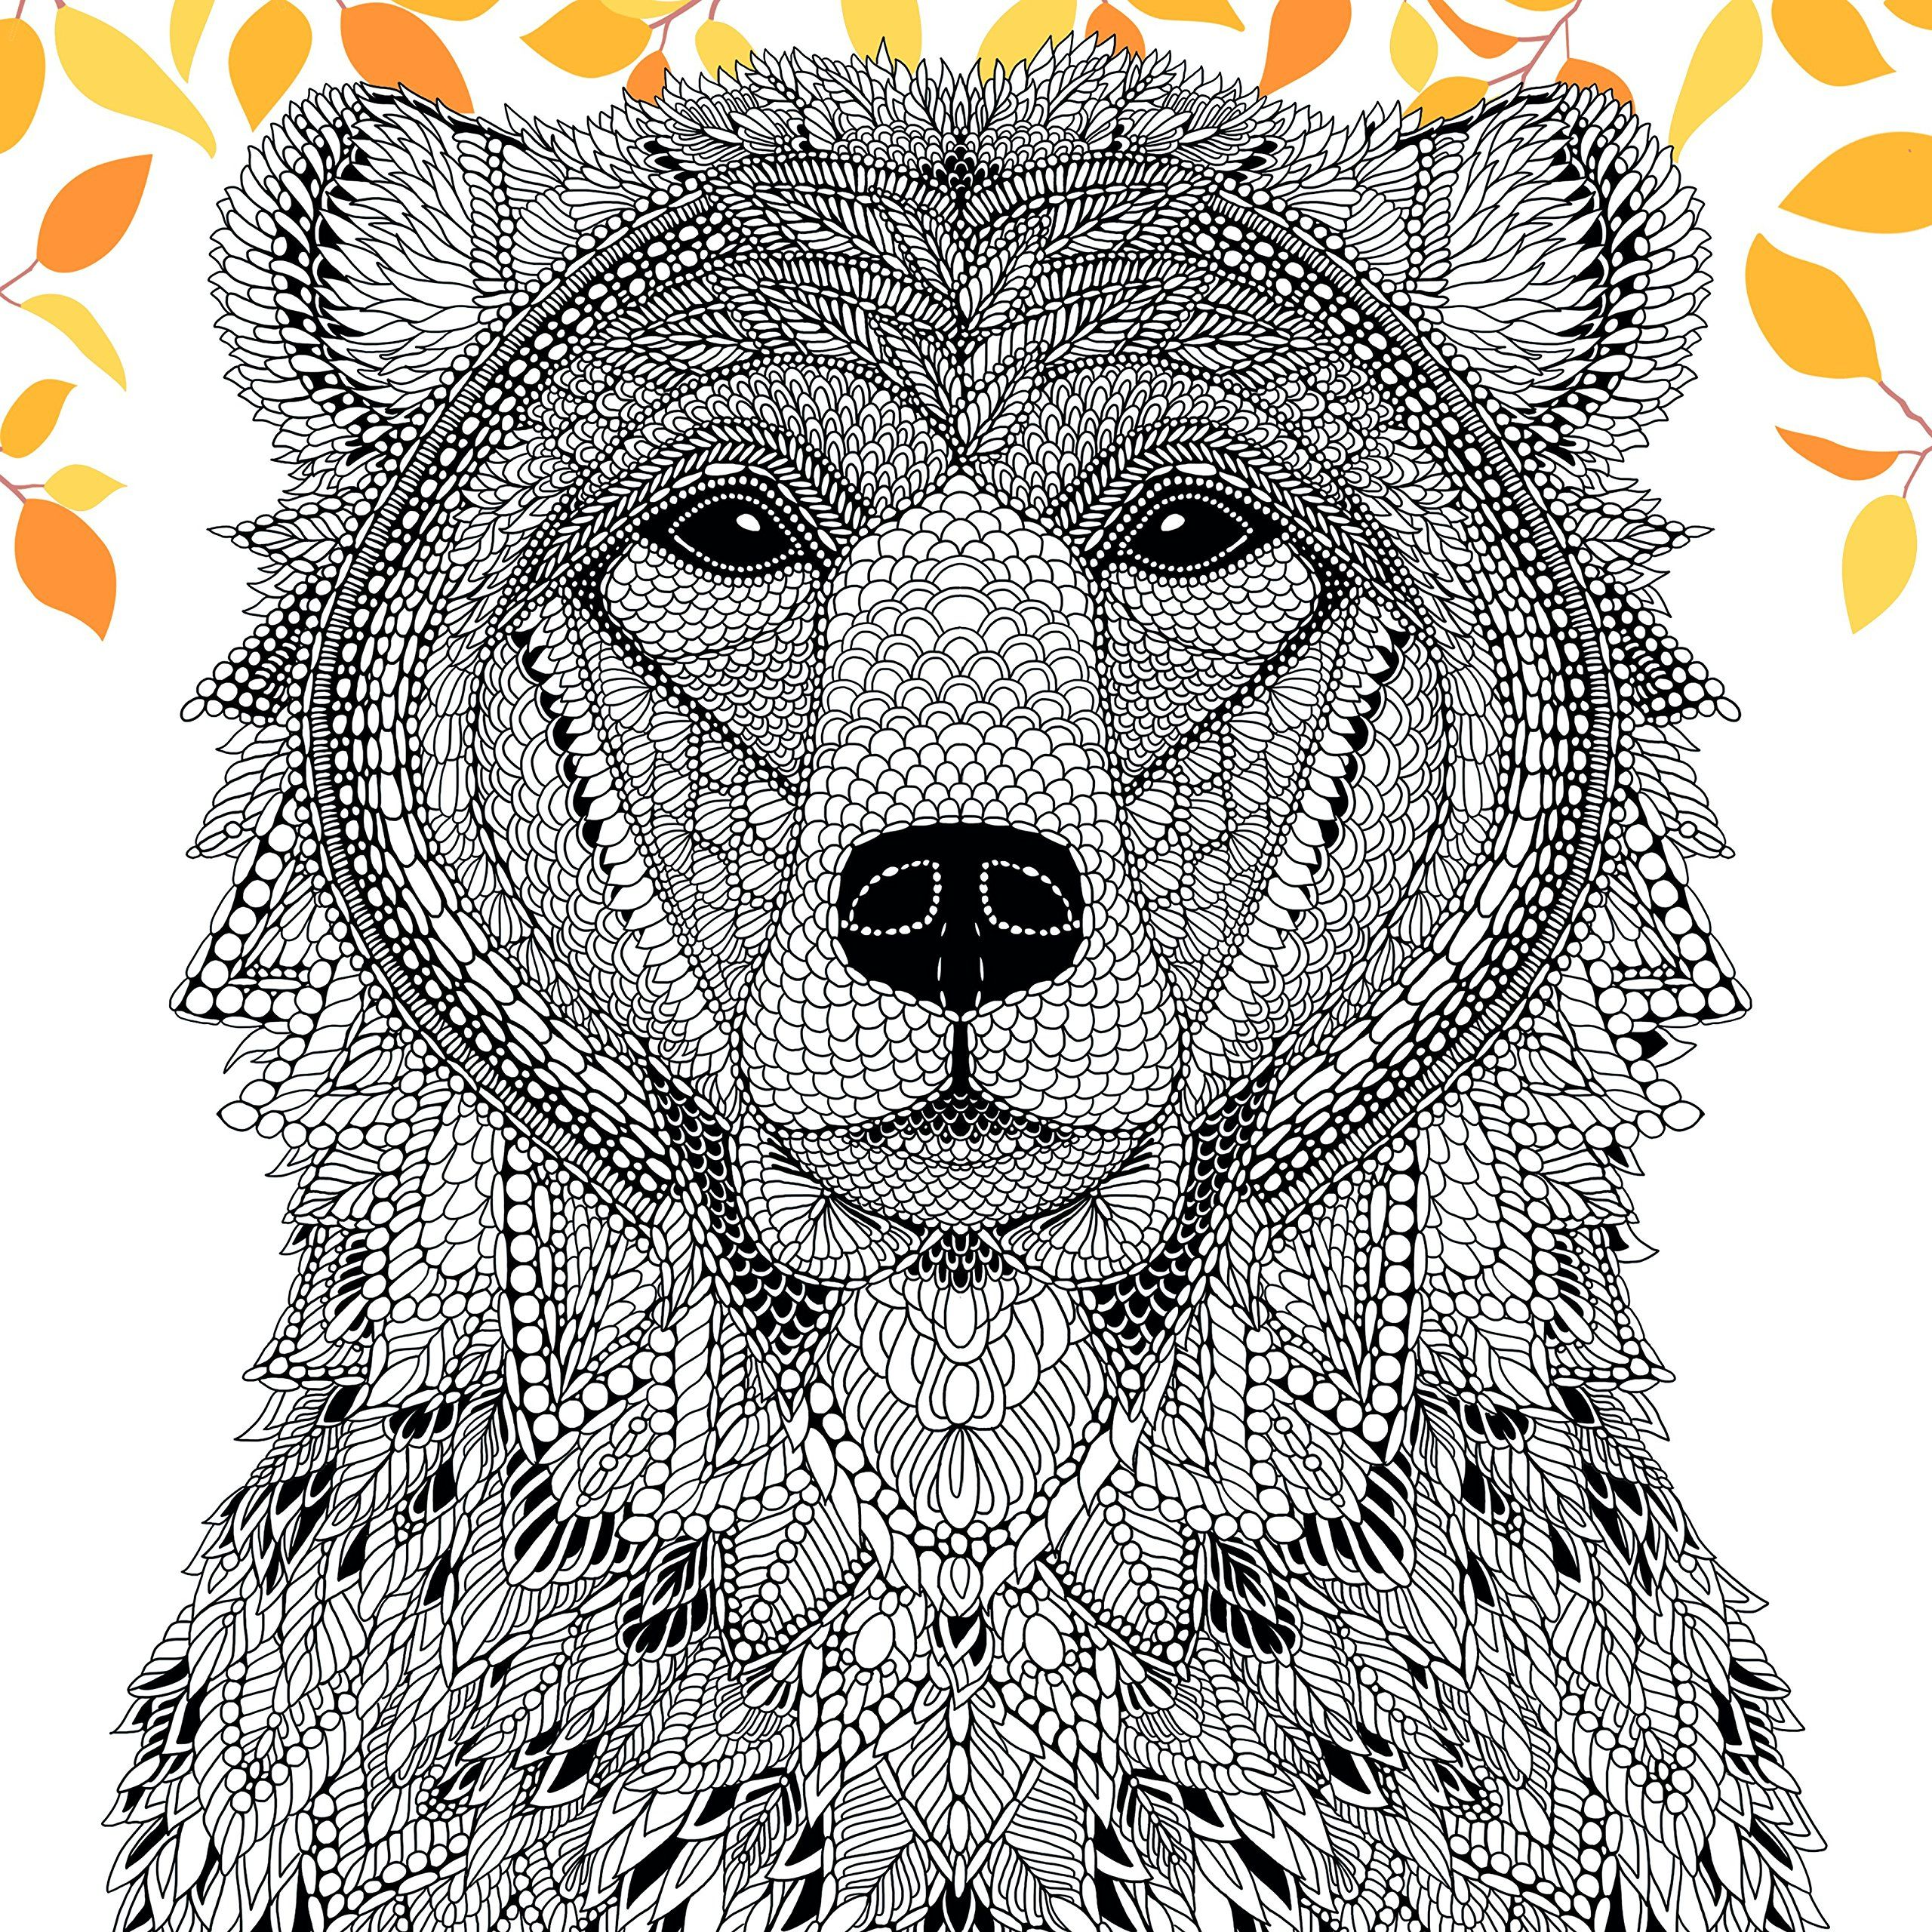 The Menagerie Animal Portraits To Colour Amazoncouk Richard Merritt Adult ColoringColoring